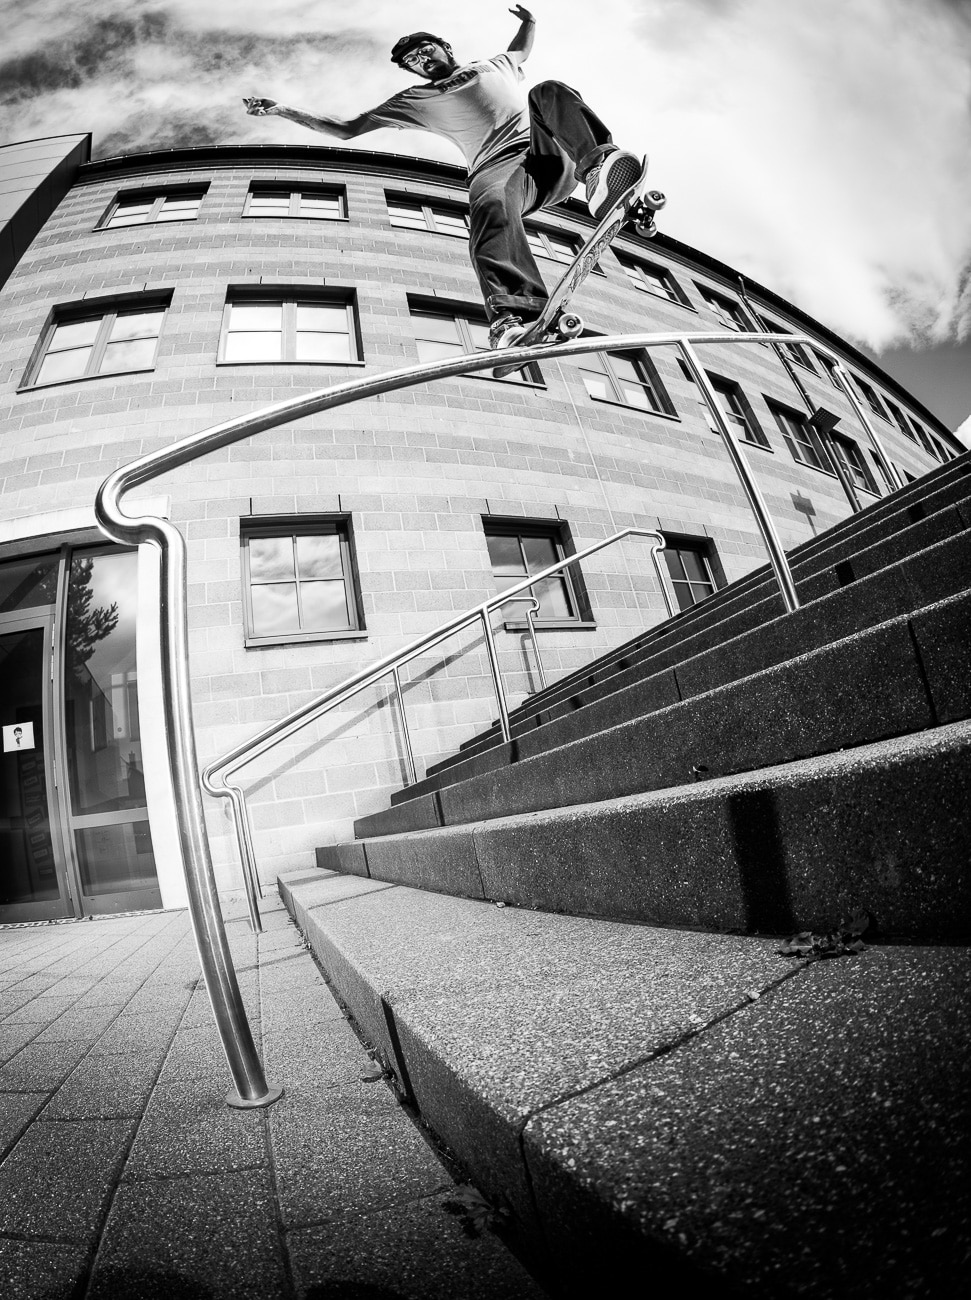 Luxemburg-irregularskatemag-tour-33